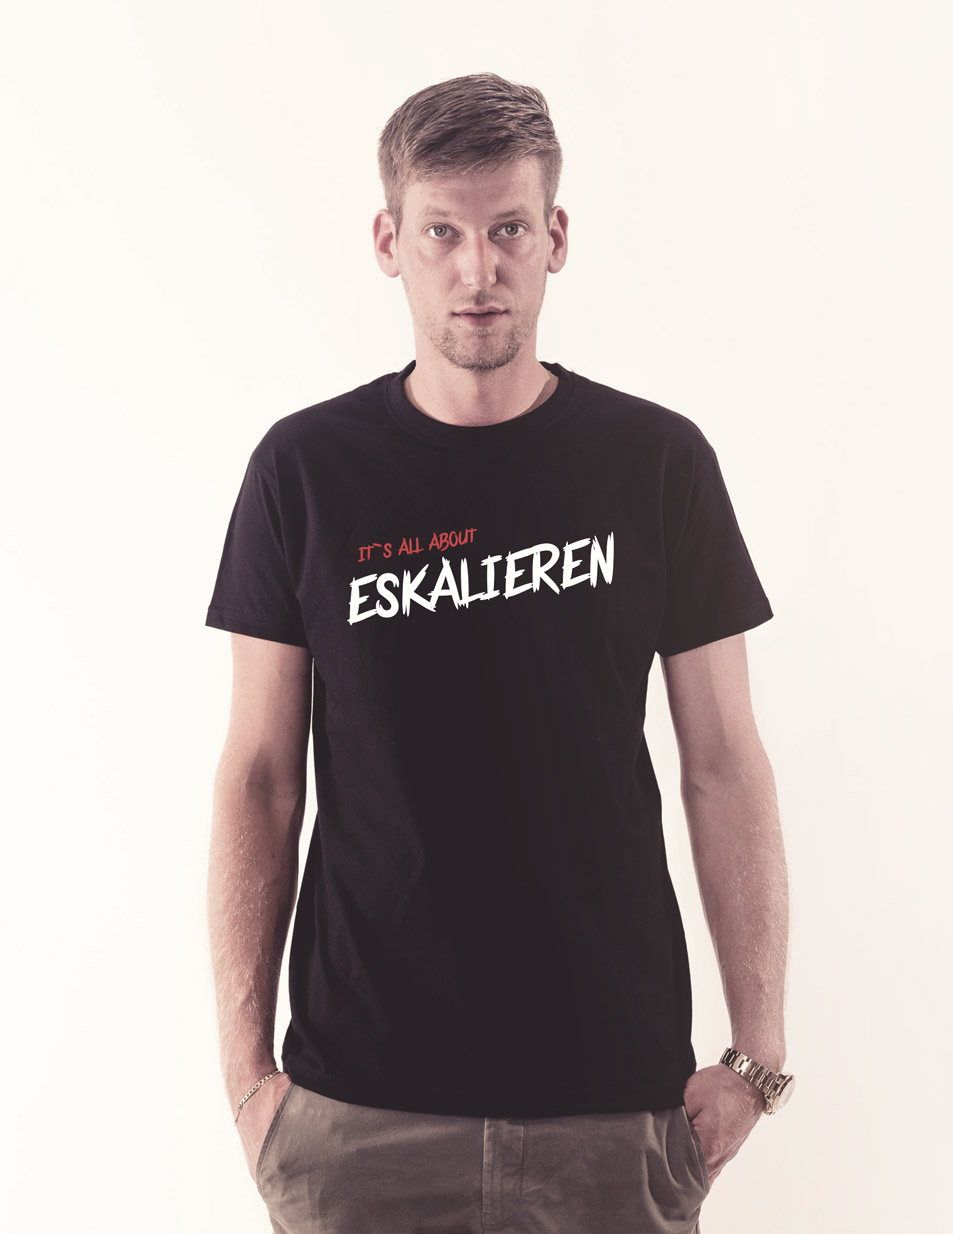 Its all about Eskalieren schwarz